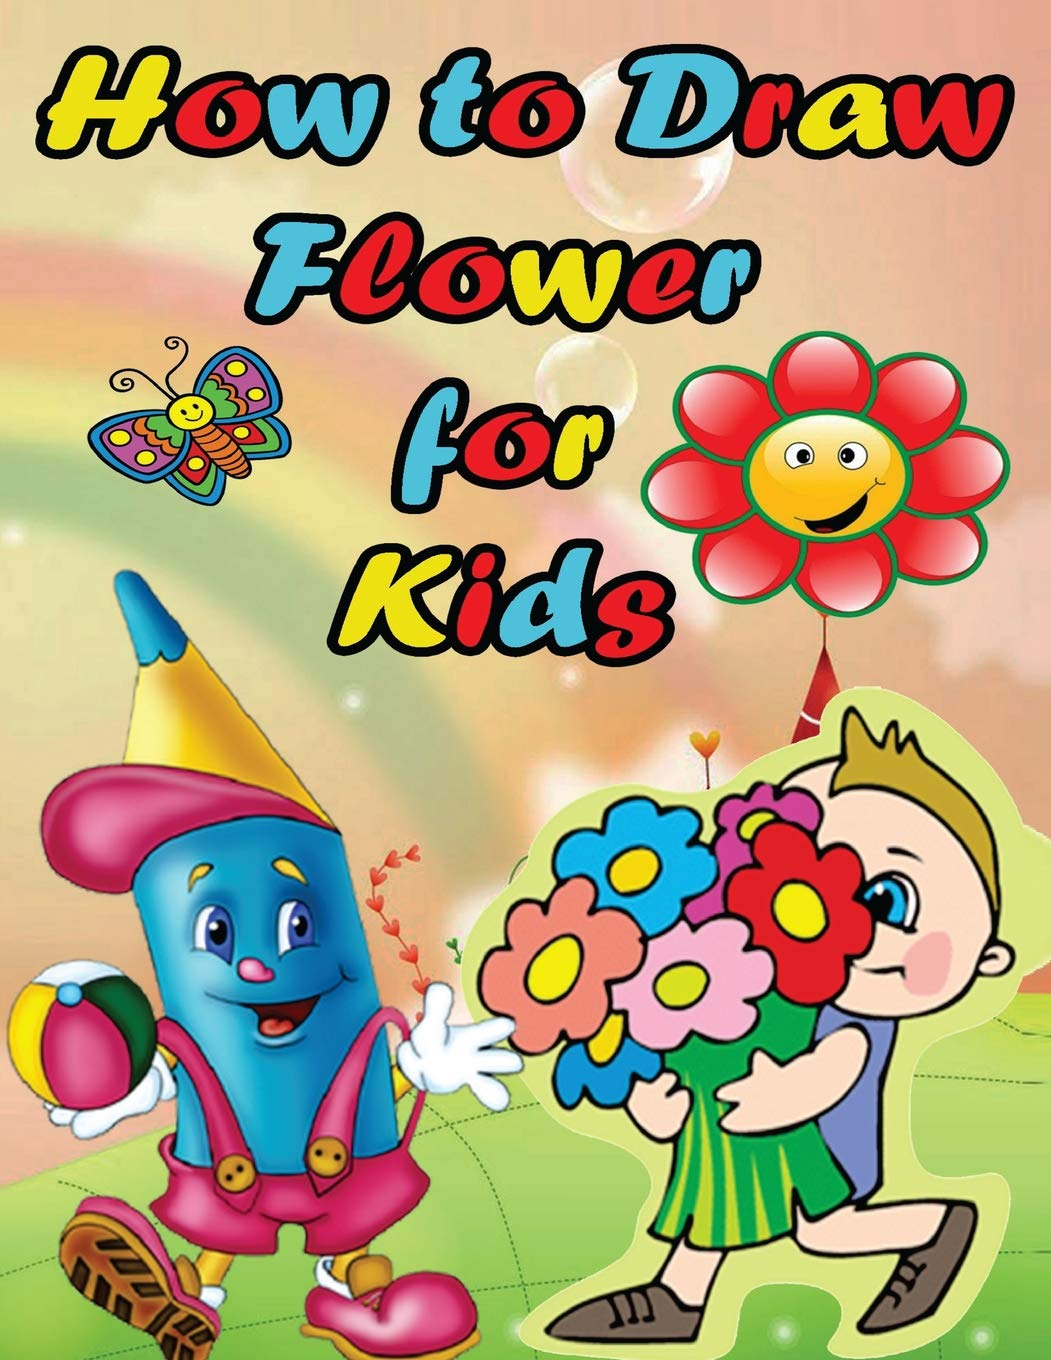 How to Draw Flower For Kids Easy Step by Step Guide for